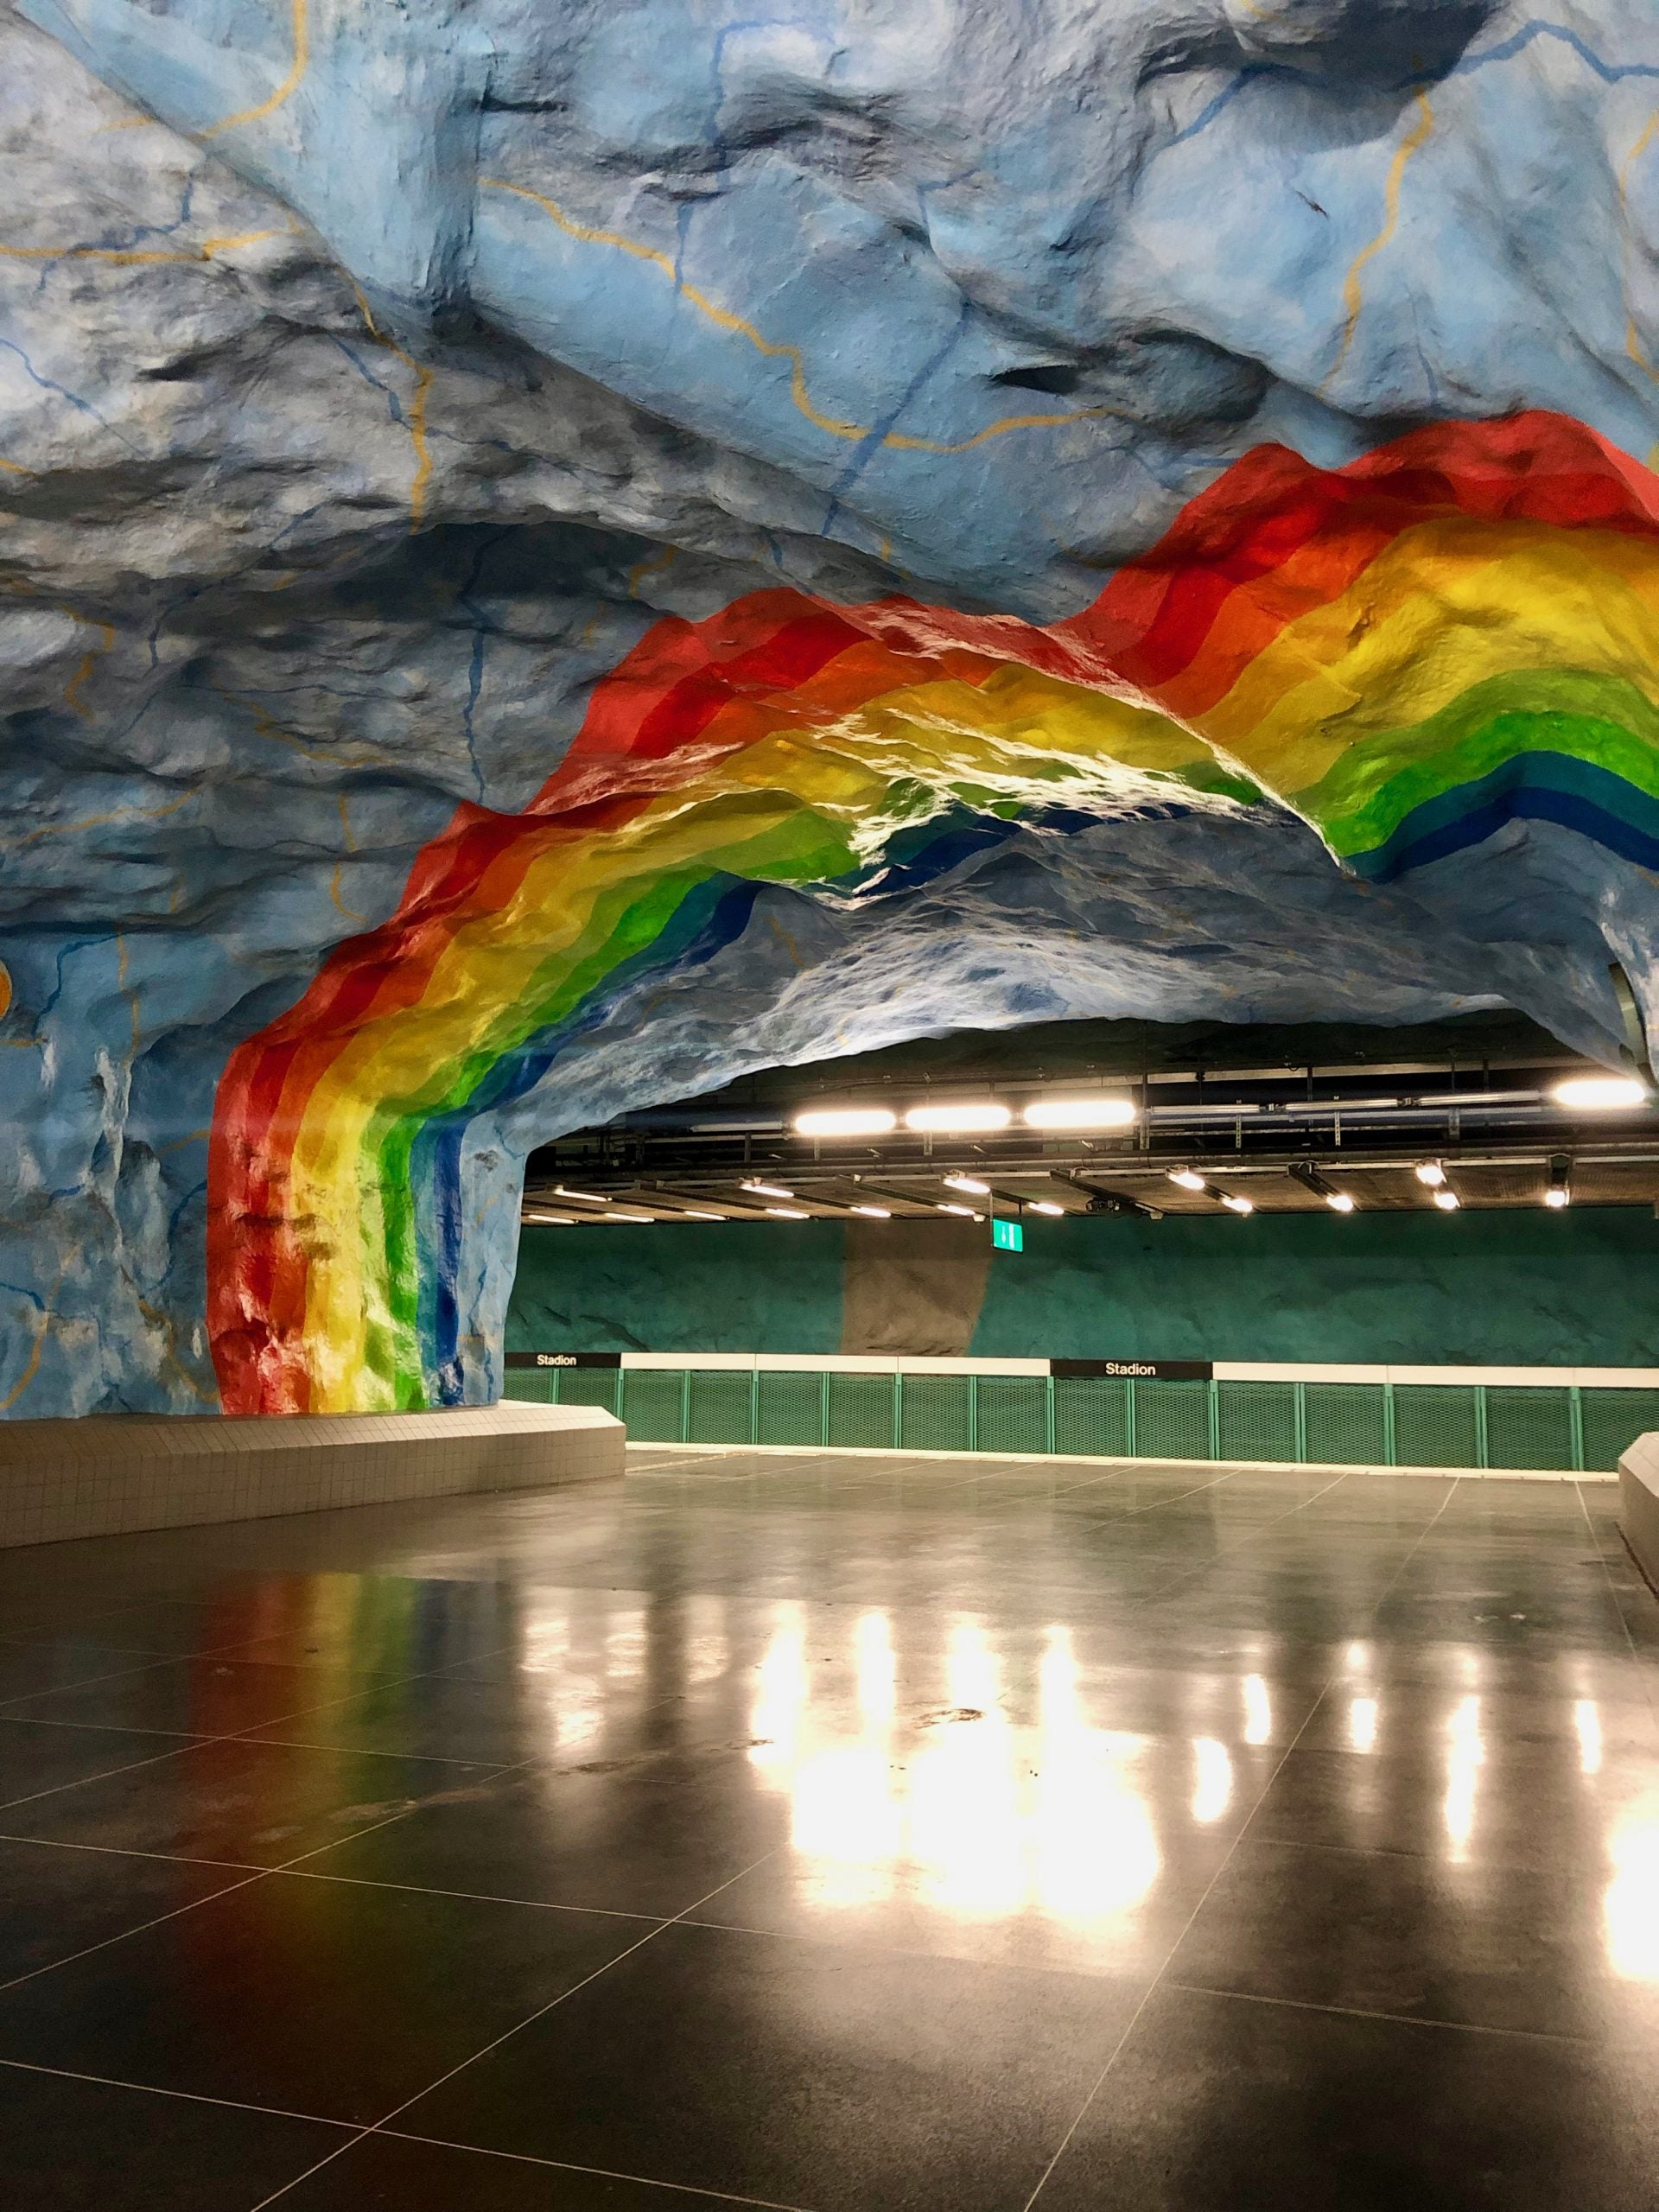 subway in Stockholm covered with art depicting a rainbow